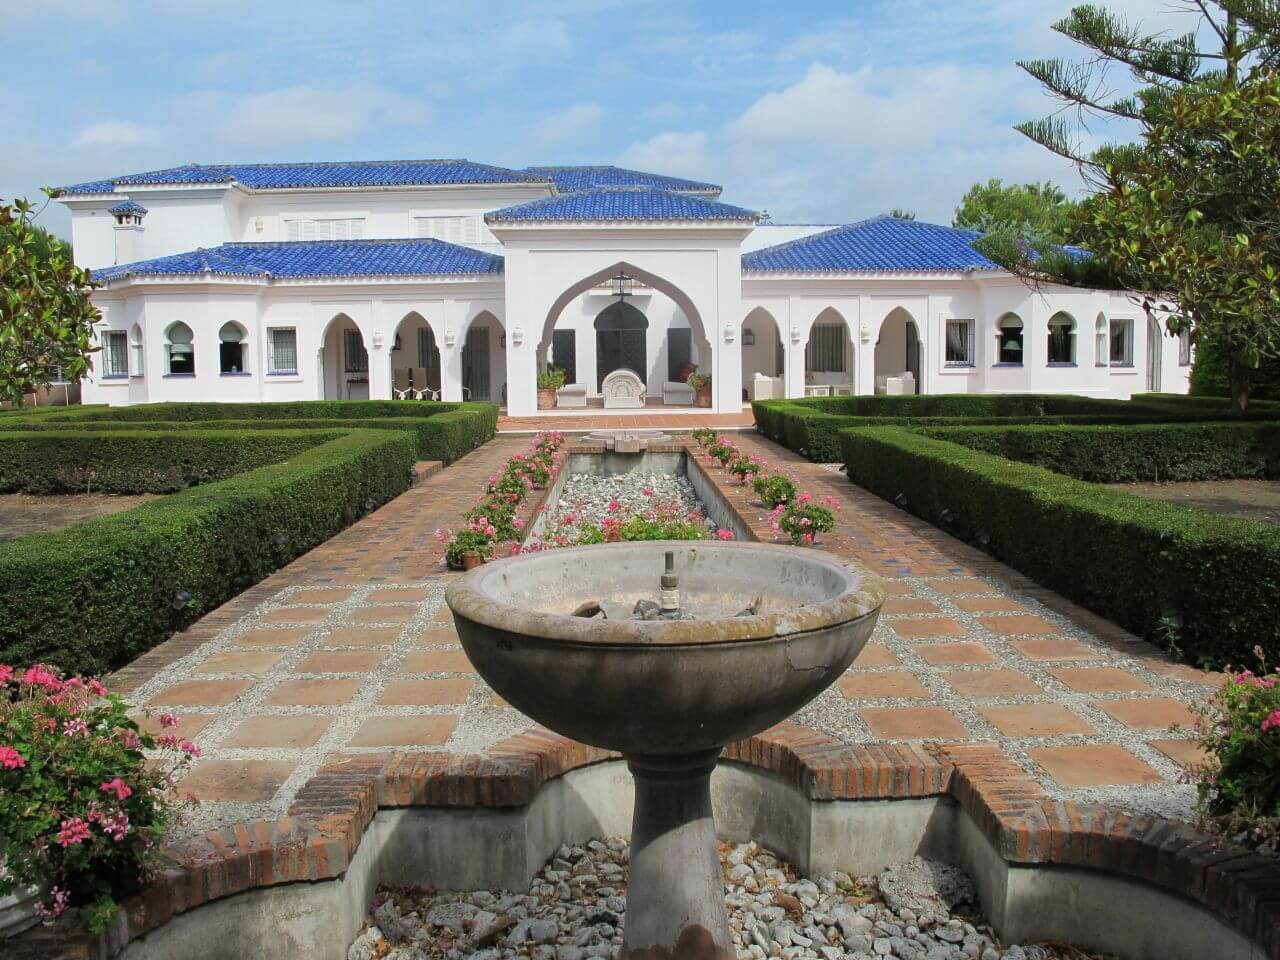 Traditional Villa Sotogrande with blue roof